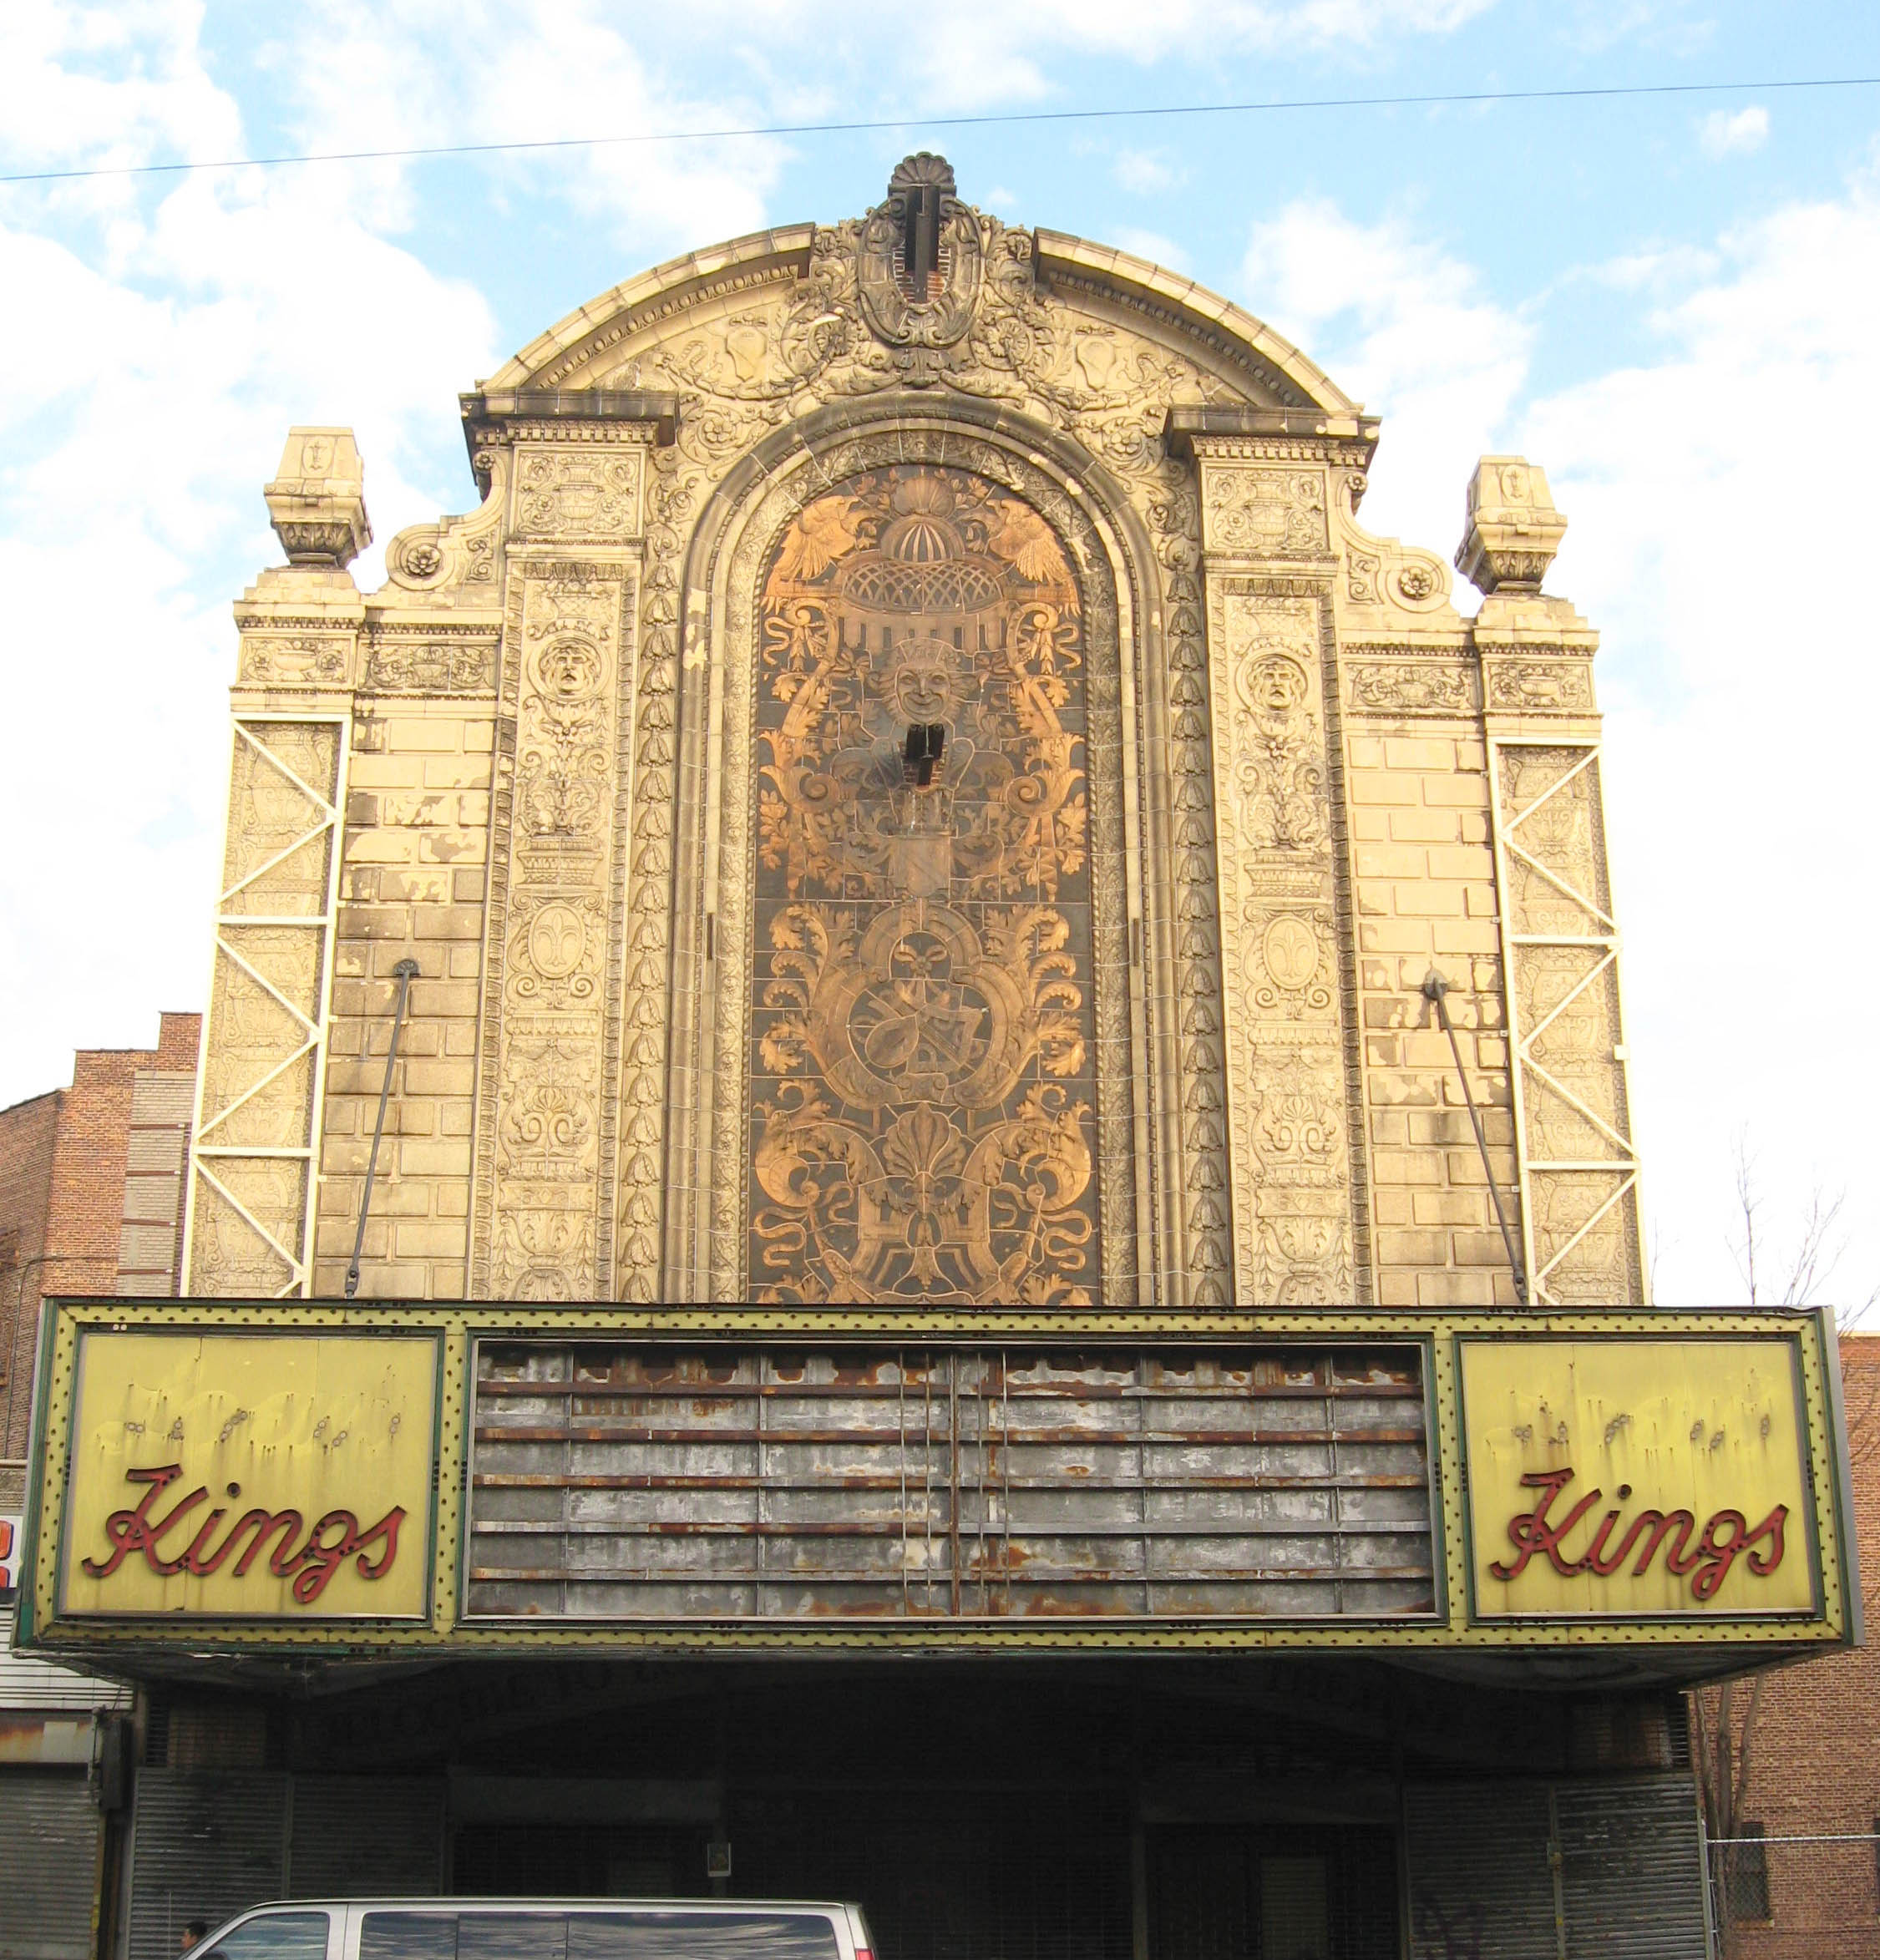 http://upload.wikimedia.org/wikipedia/commons/5/5b/Lowes_Kings_Flatbush_front_jeh.JPG